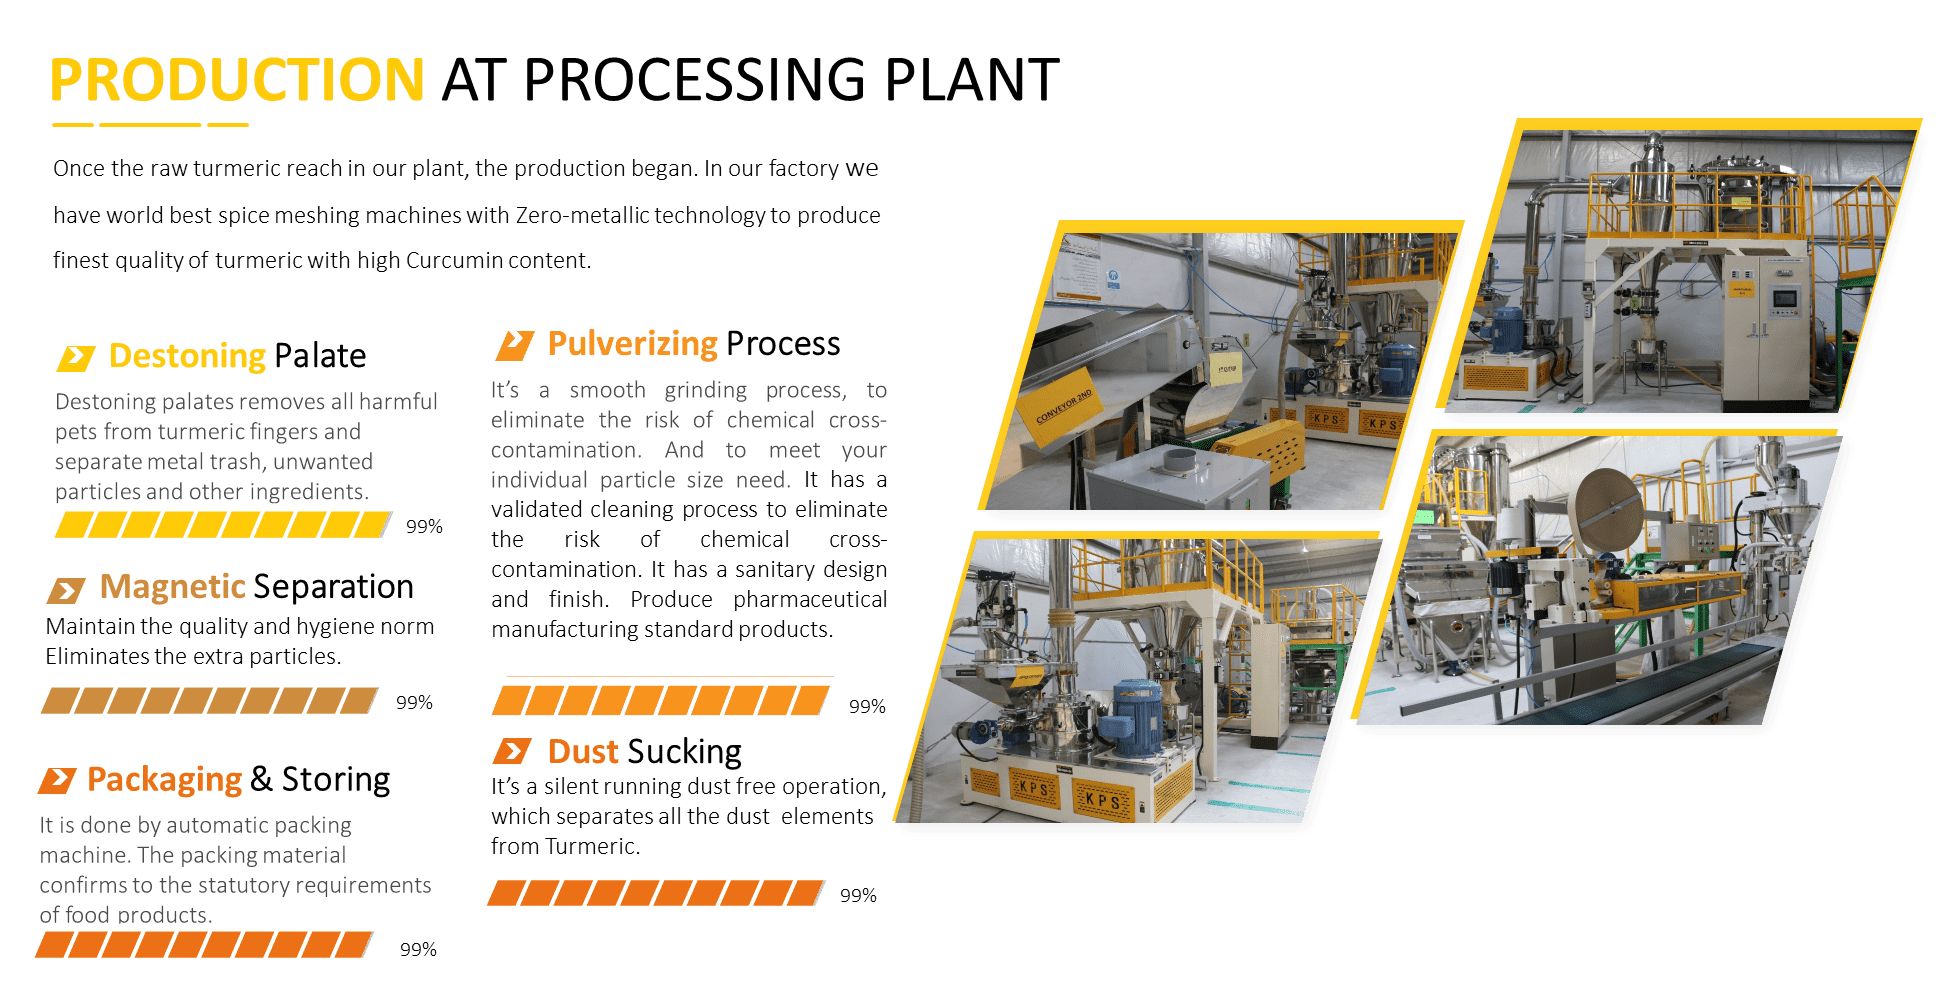 production-at-processing-plant-yesang-group-lahore-pakistan-info